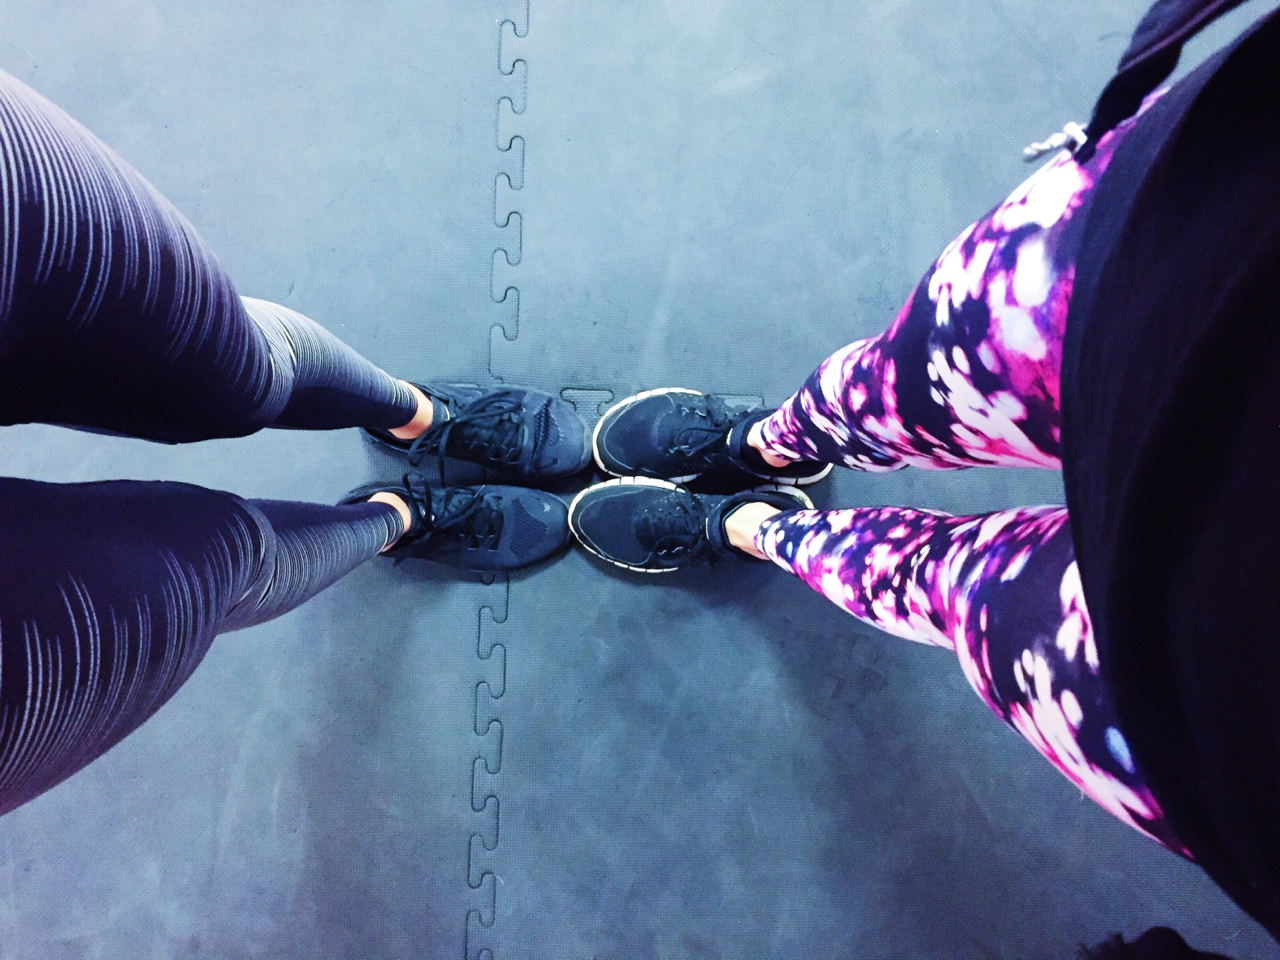 Training Attire Early Training Session this Morning in Nike Flash Leggings (Left) & H&M Print Leggings (Right) with Black Nike Trainers- WorkoutFashion //SHE